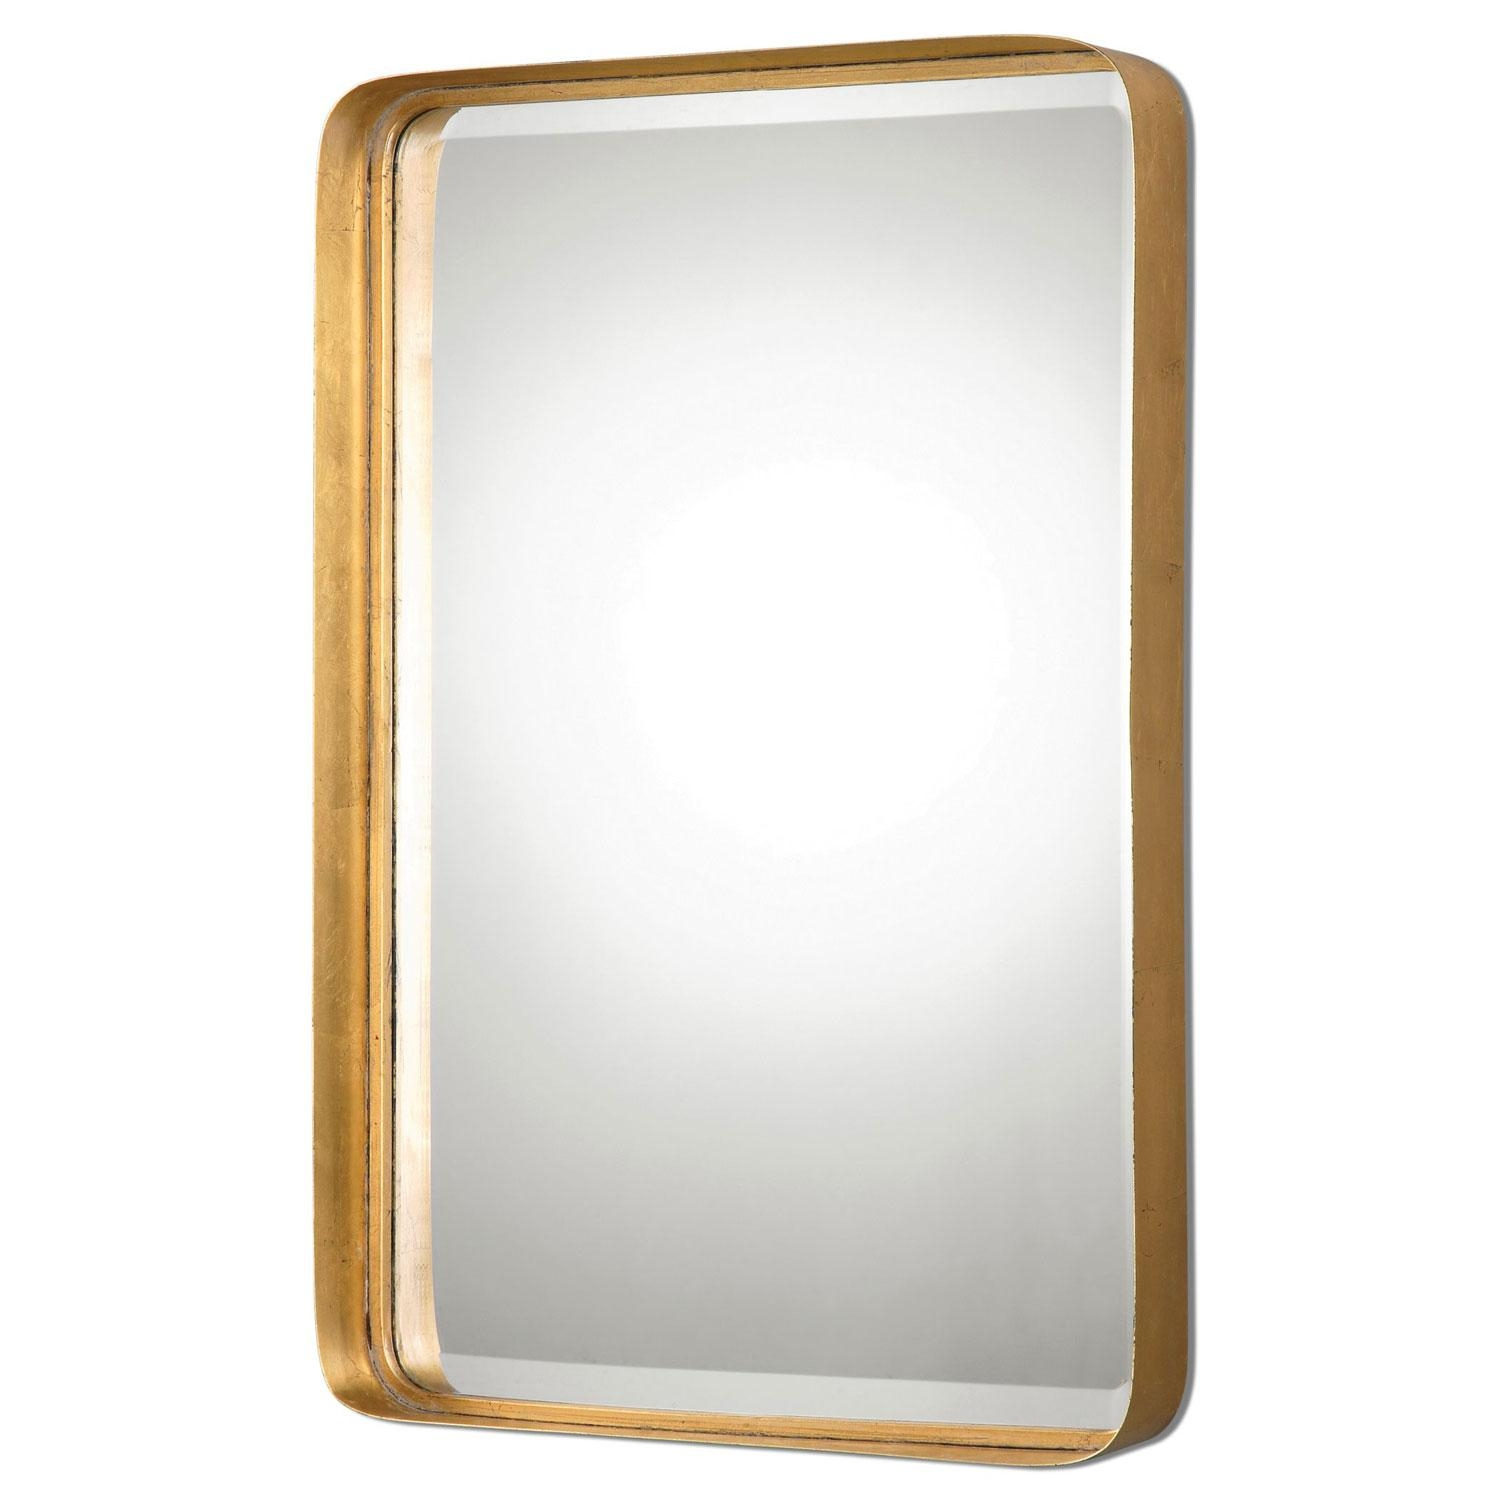 Contemporary Mirrors | Bellacor Within Square Gold Mirror (Image 2 of 20)